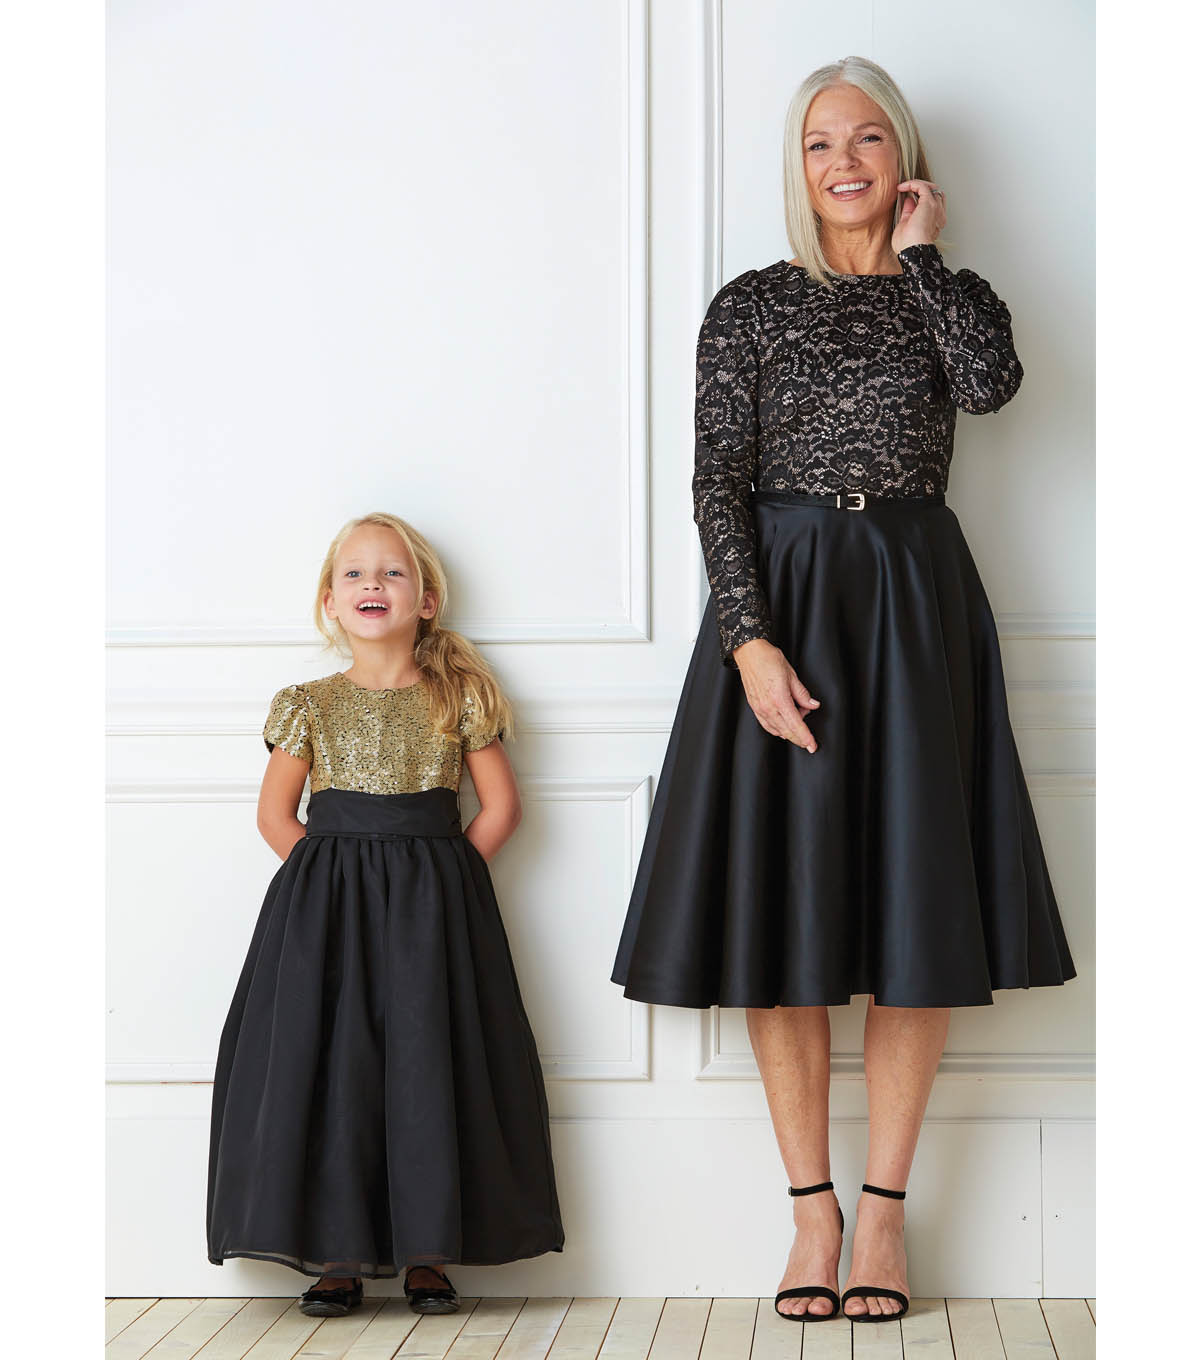 Glitzy Dresses For Granddaughters And Grandmother Joann